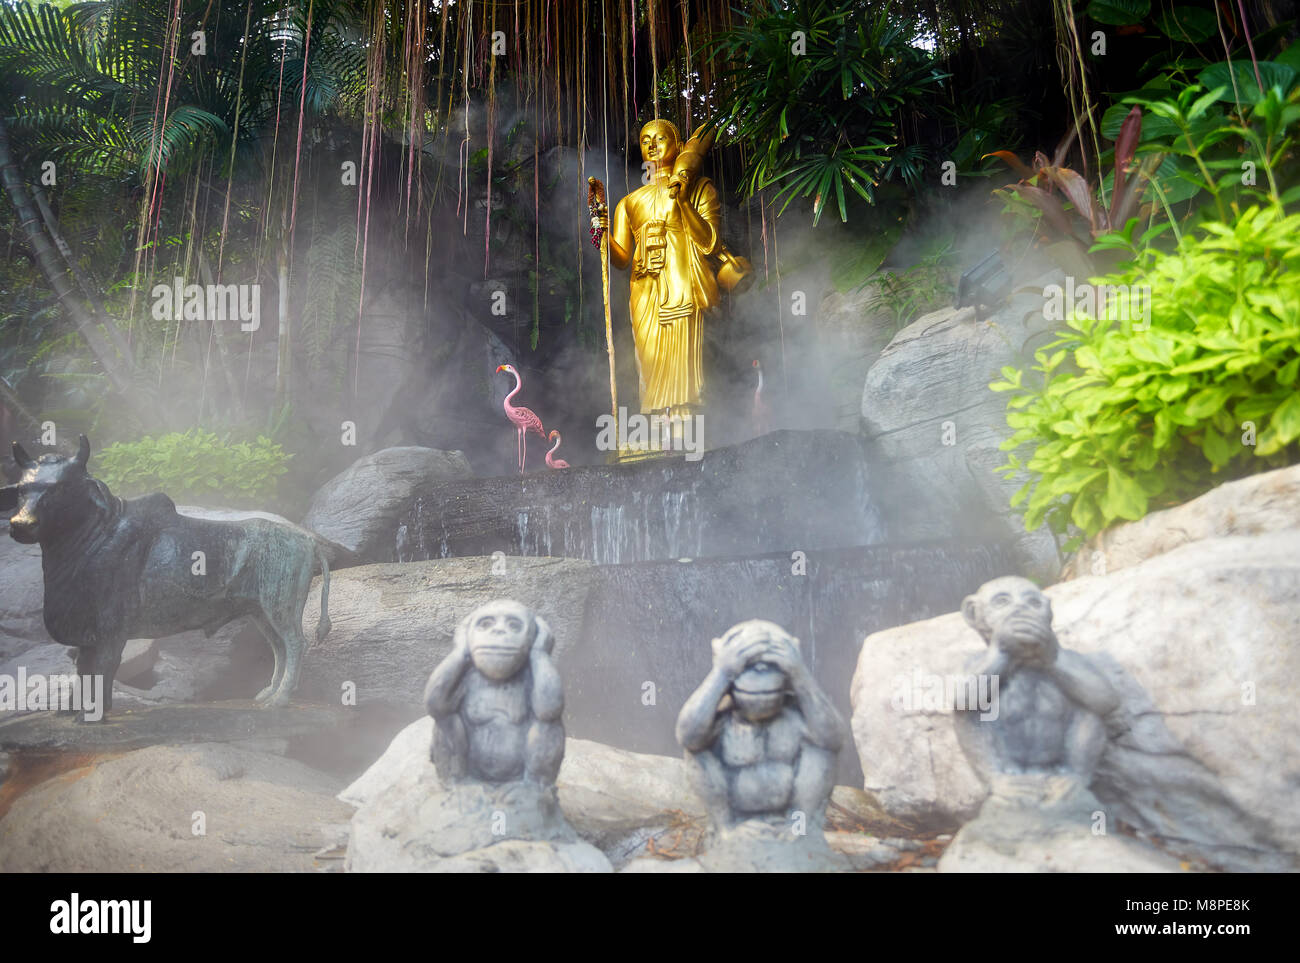 Golden Buddha statue in the tropical garden with waterfall in Wat Saket Golden Mountain Temple in Bangkok - Stock Image